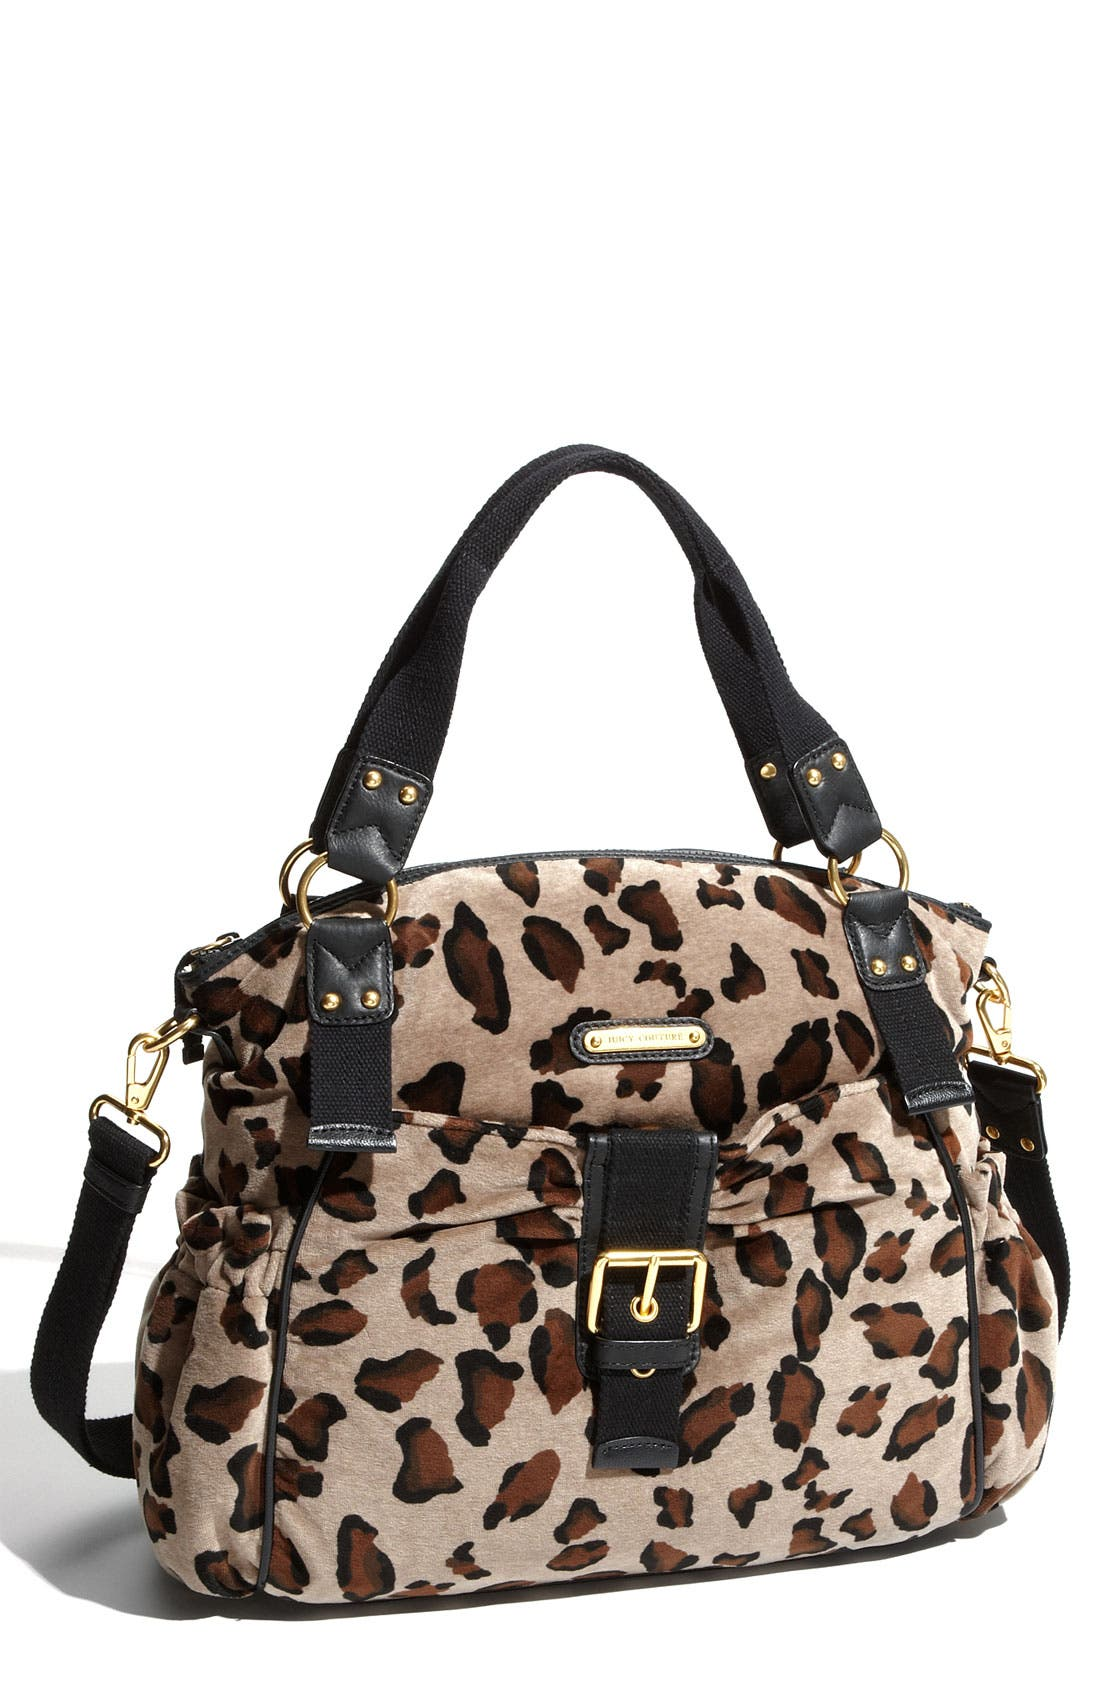 Alternate Image 1 Selected - Juicy Couture Animal Print Shoulder Bag